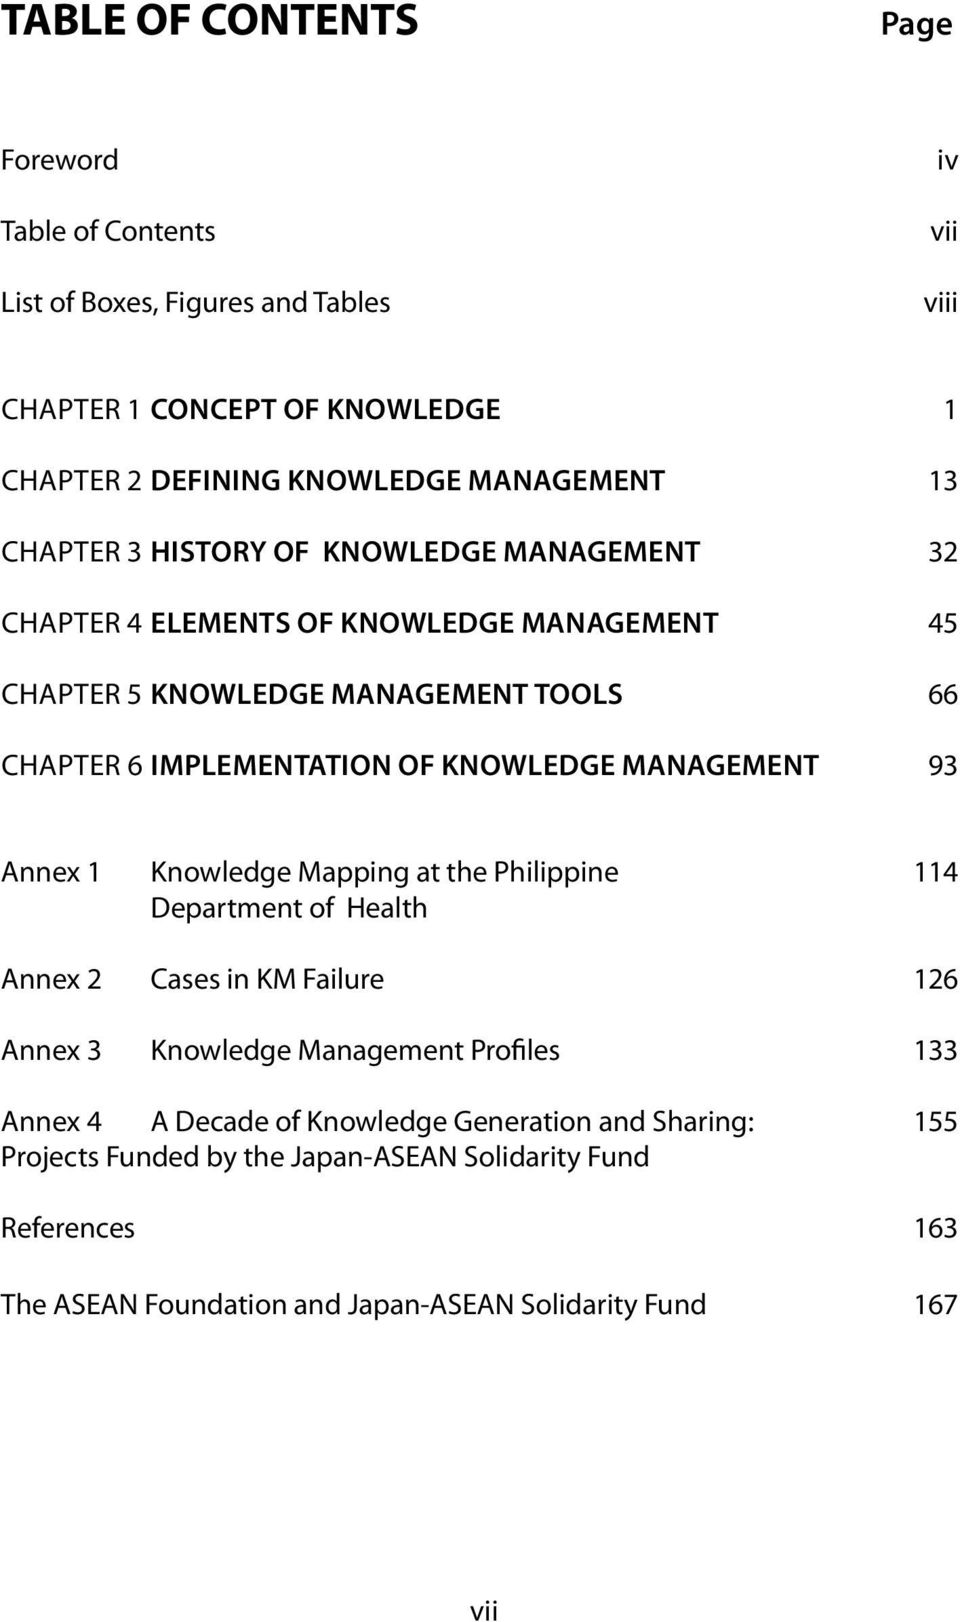 Knowledge Management 93 Annex 1 Knowledge Mapping at the Philippine 114 Department of Health Annex 2 Cases in KM Failure 126 Annex 3 Knowledge Management Profiles 133